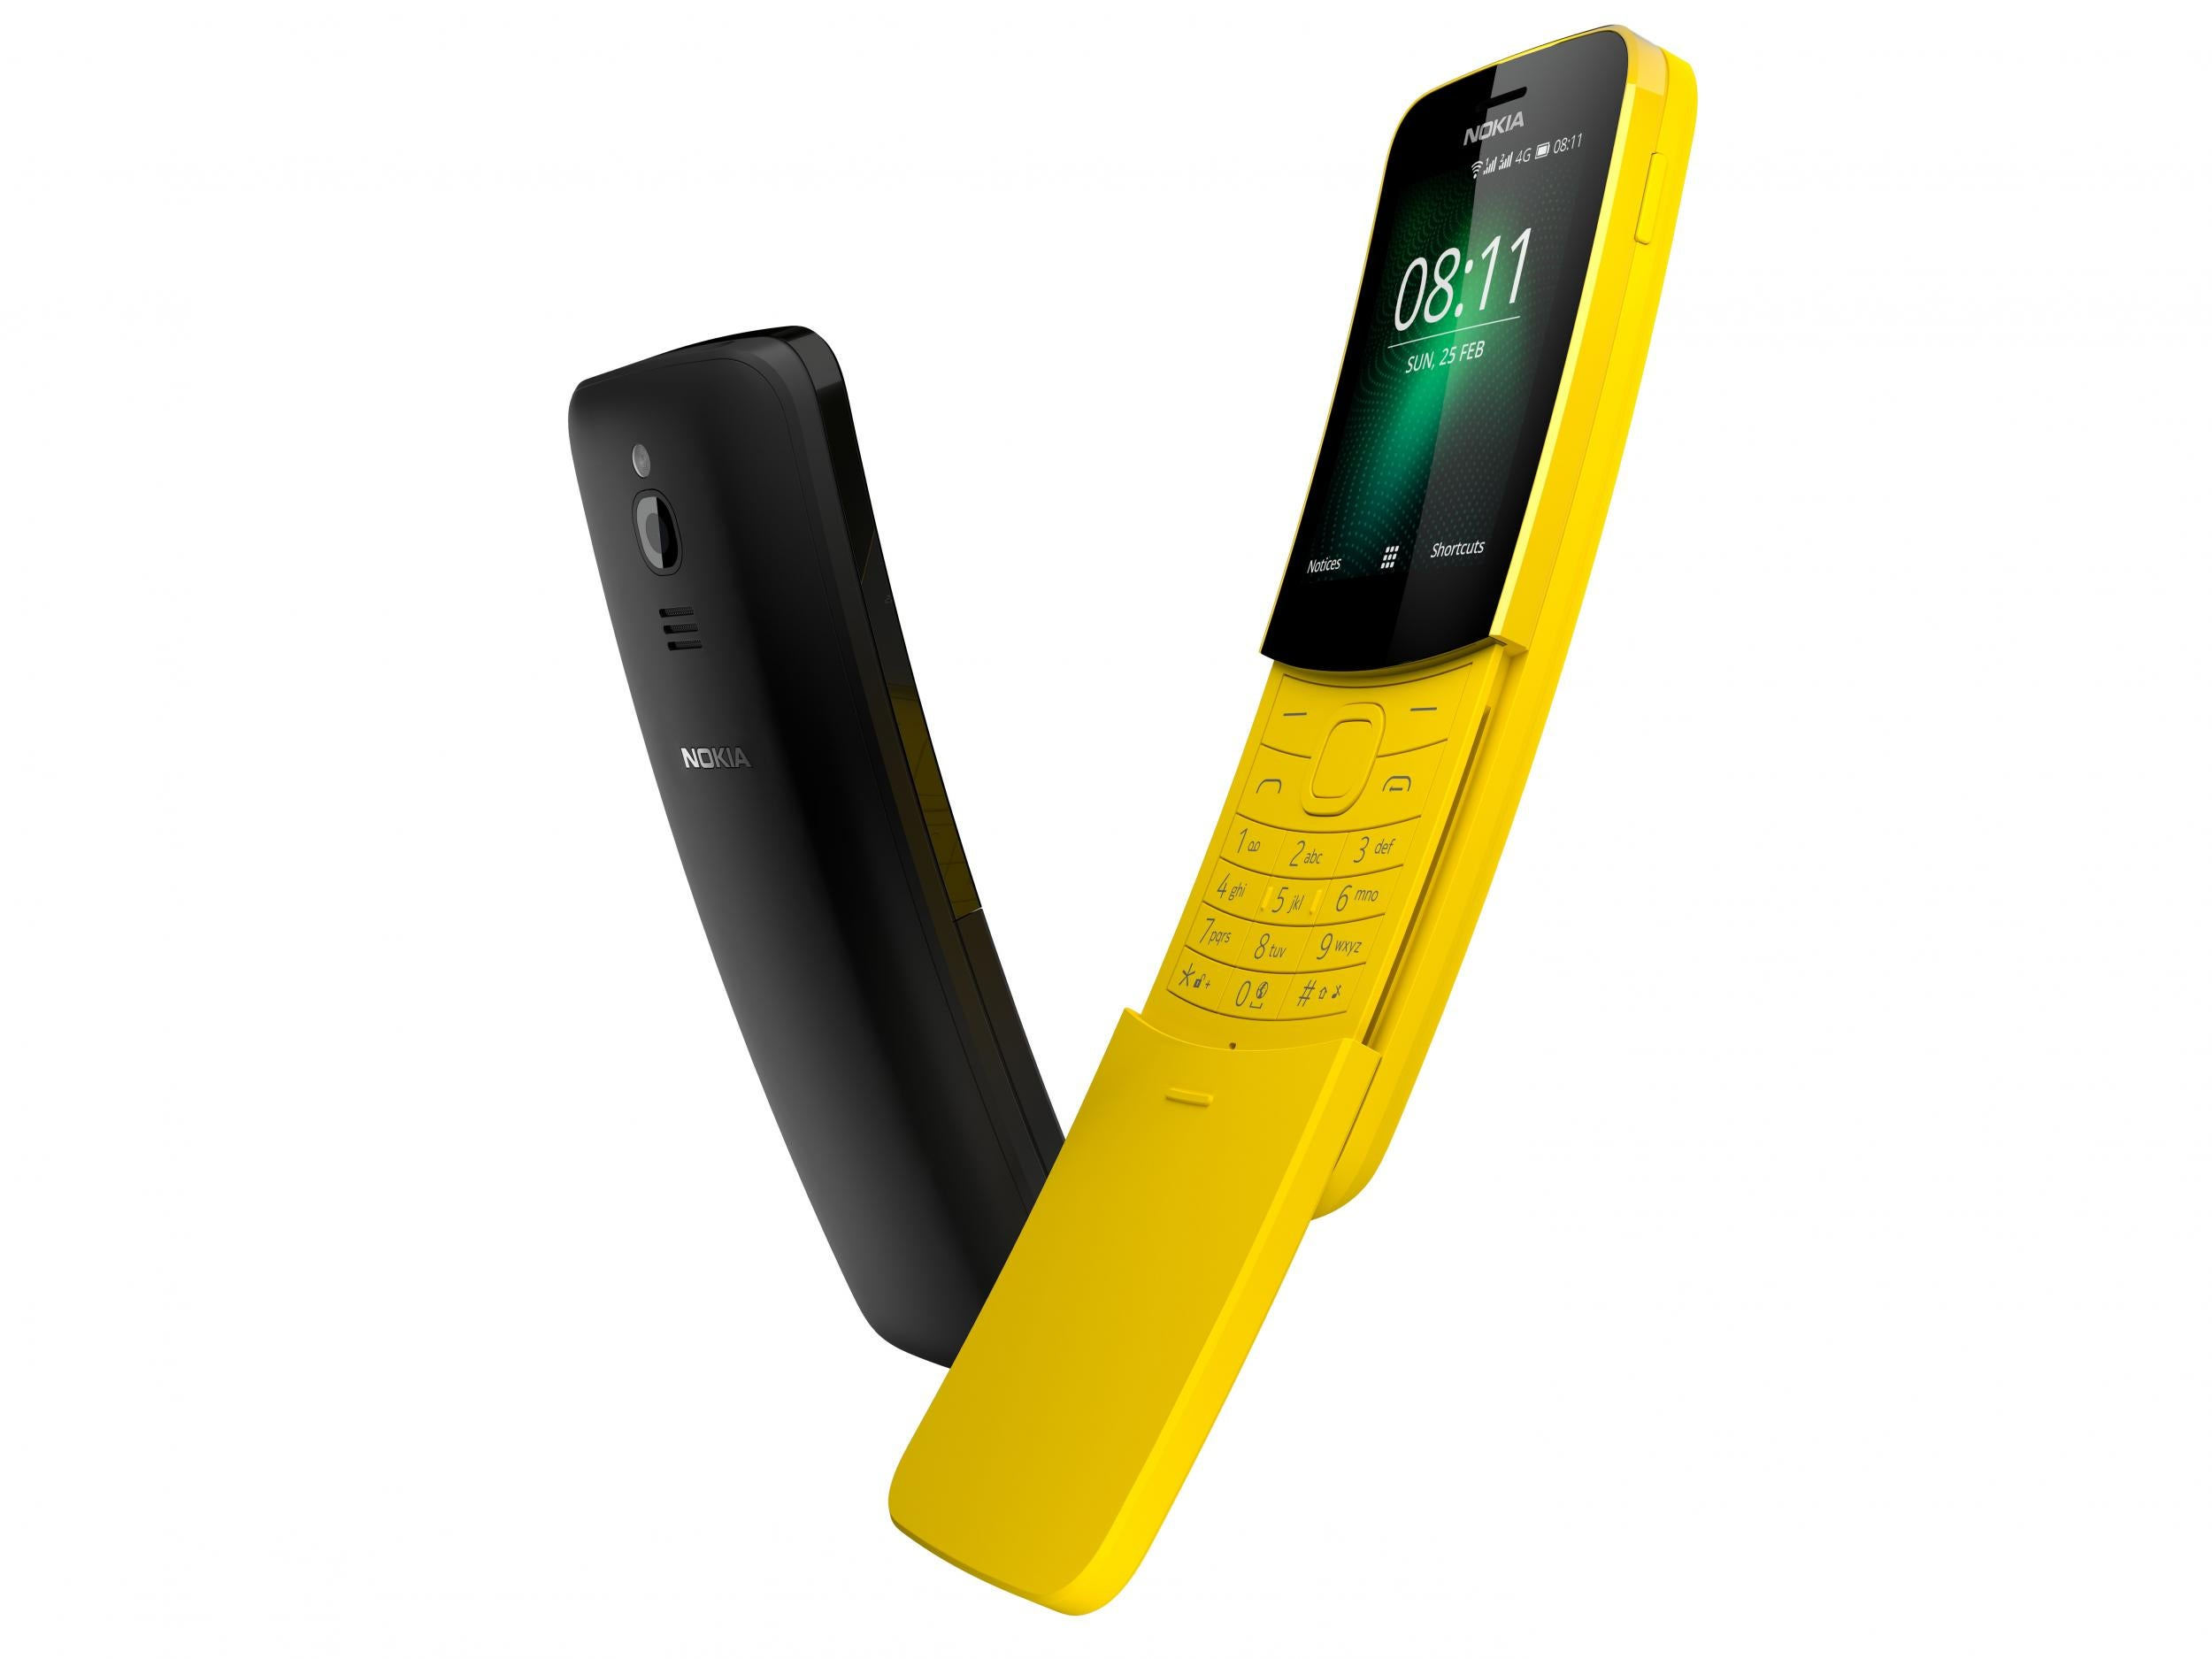 Mwc 2018 Nokia Reinvents Iconic 8110 Banana Phone As